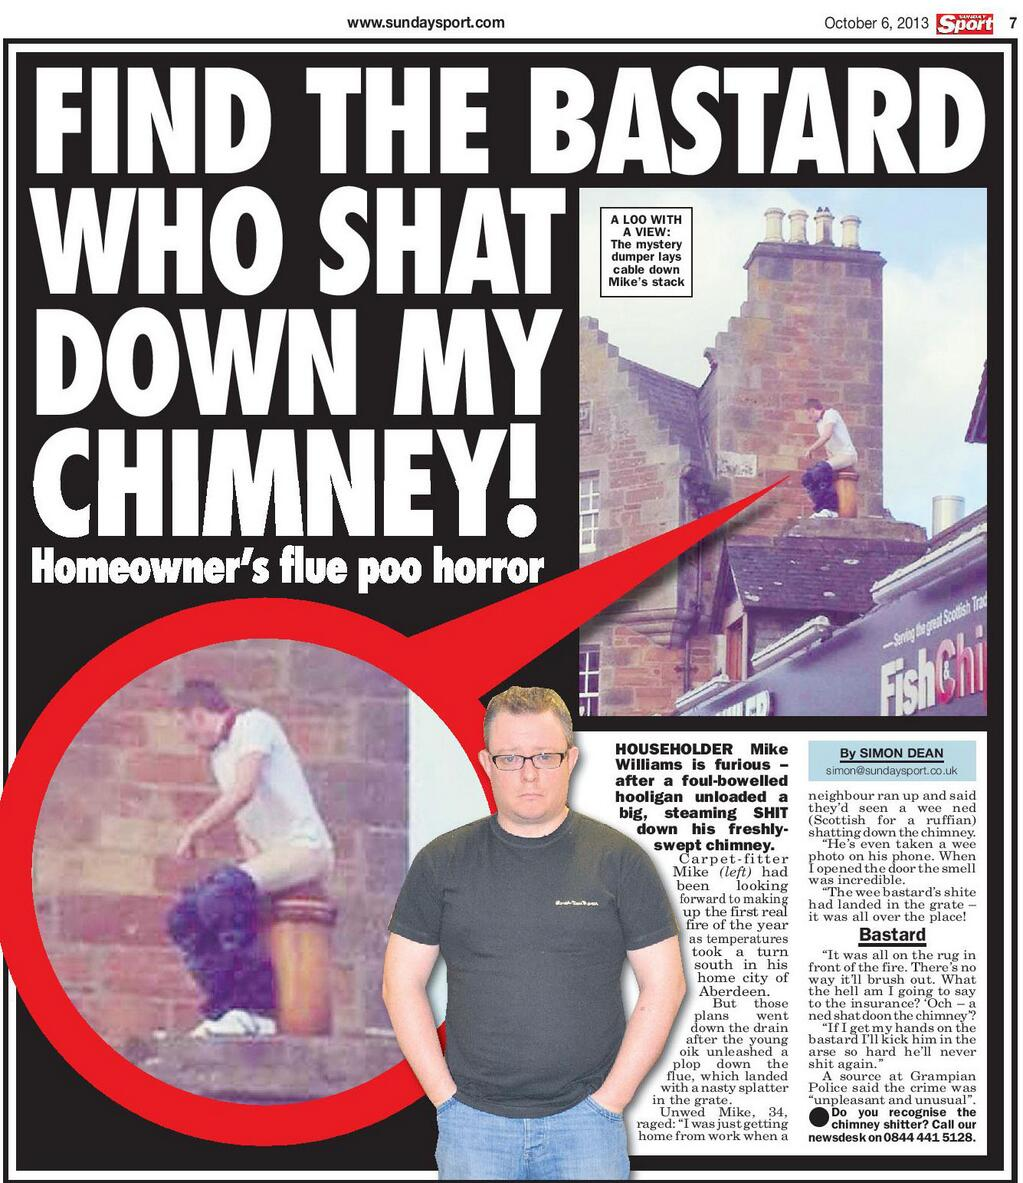 [Image: Find-The-Bastard-Who-Shat-Down-My-Chimney.jpeg]